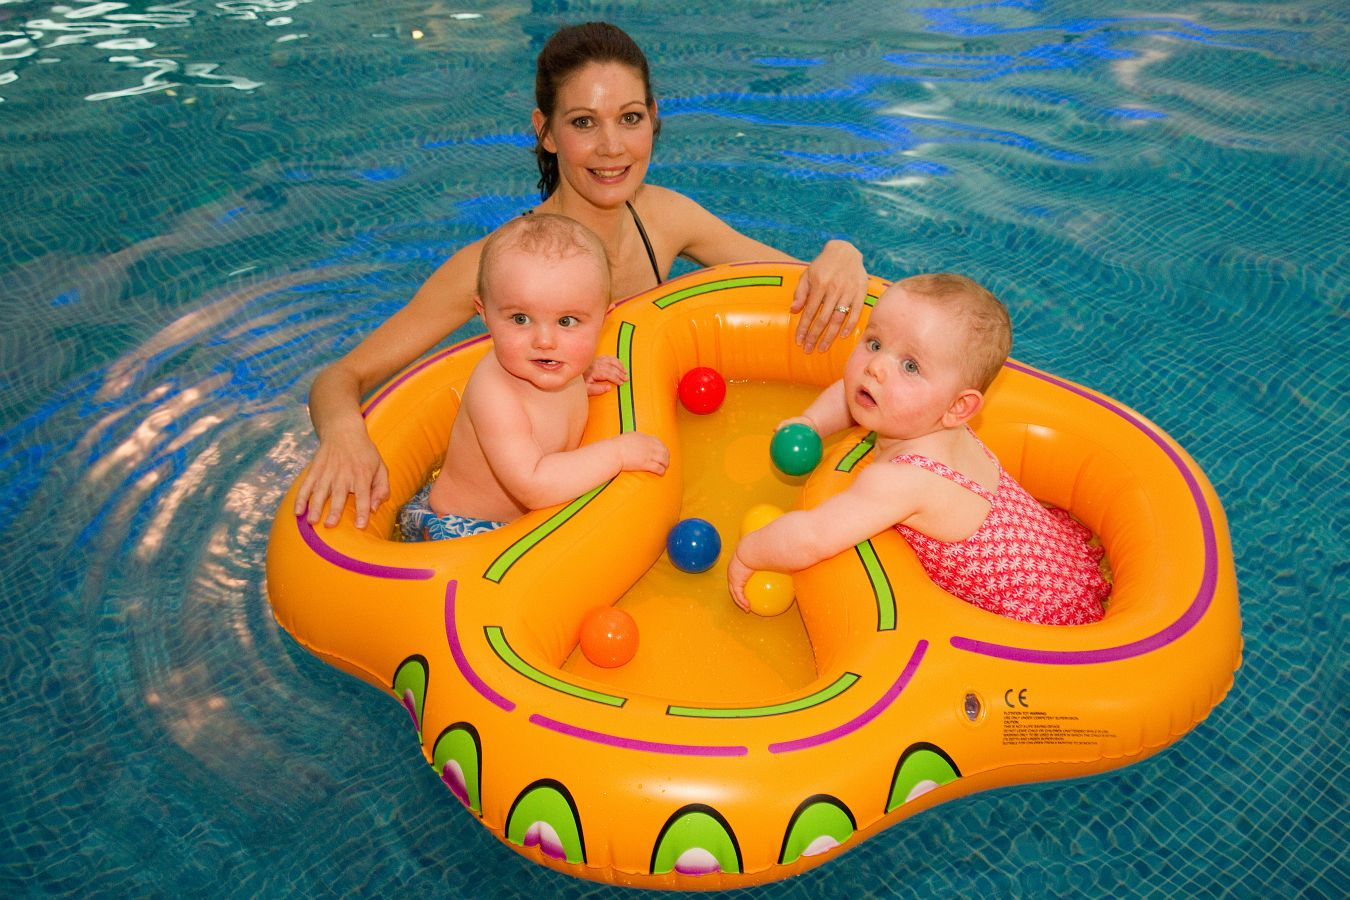 Buy Twins Swim Floats Amp Inflatable Pool Floats Online At